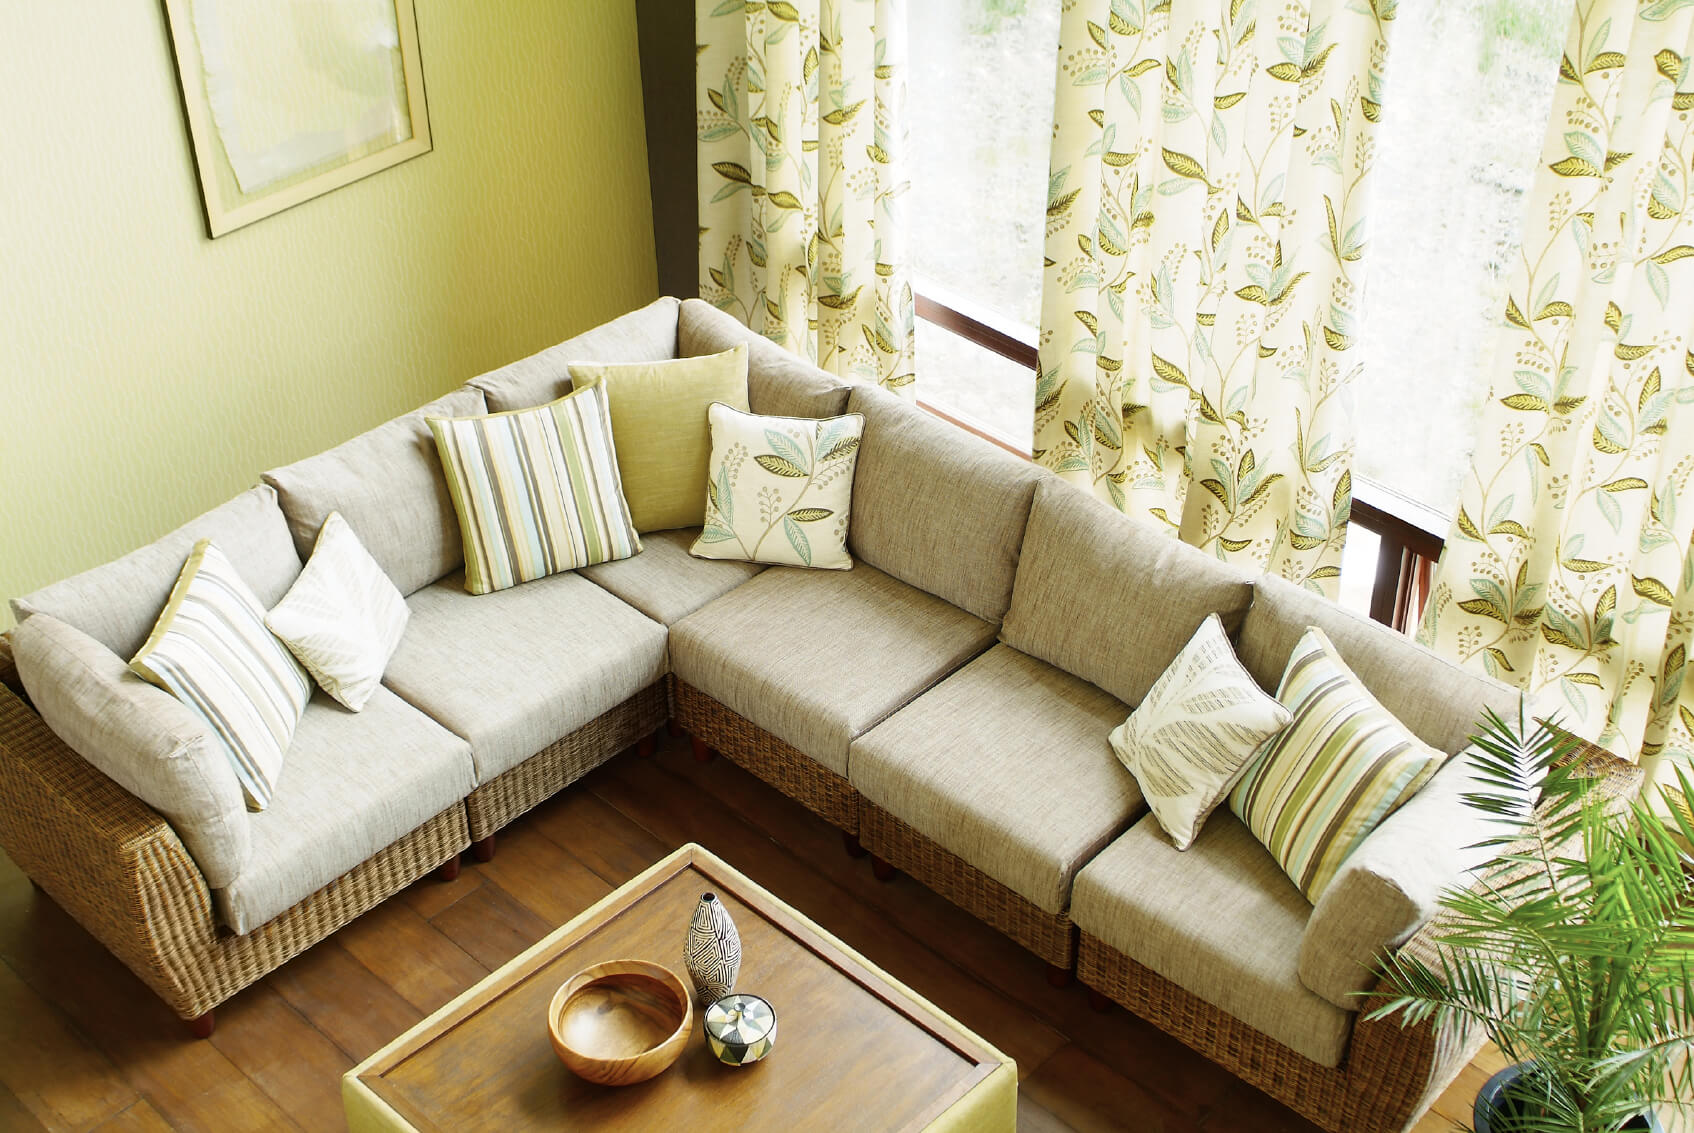 53 cozy small living room interior designs small spaces Living room couch ideas